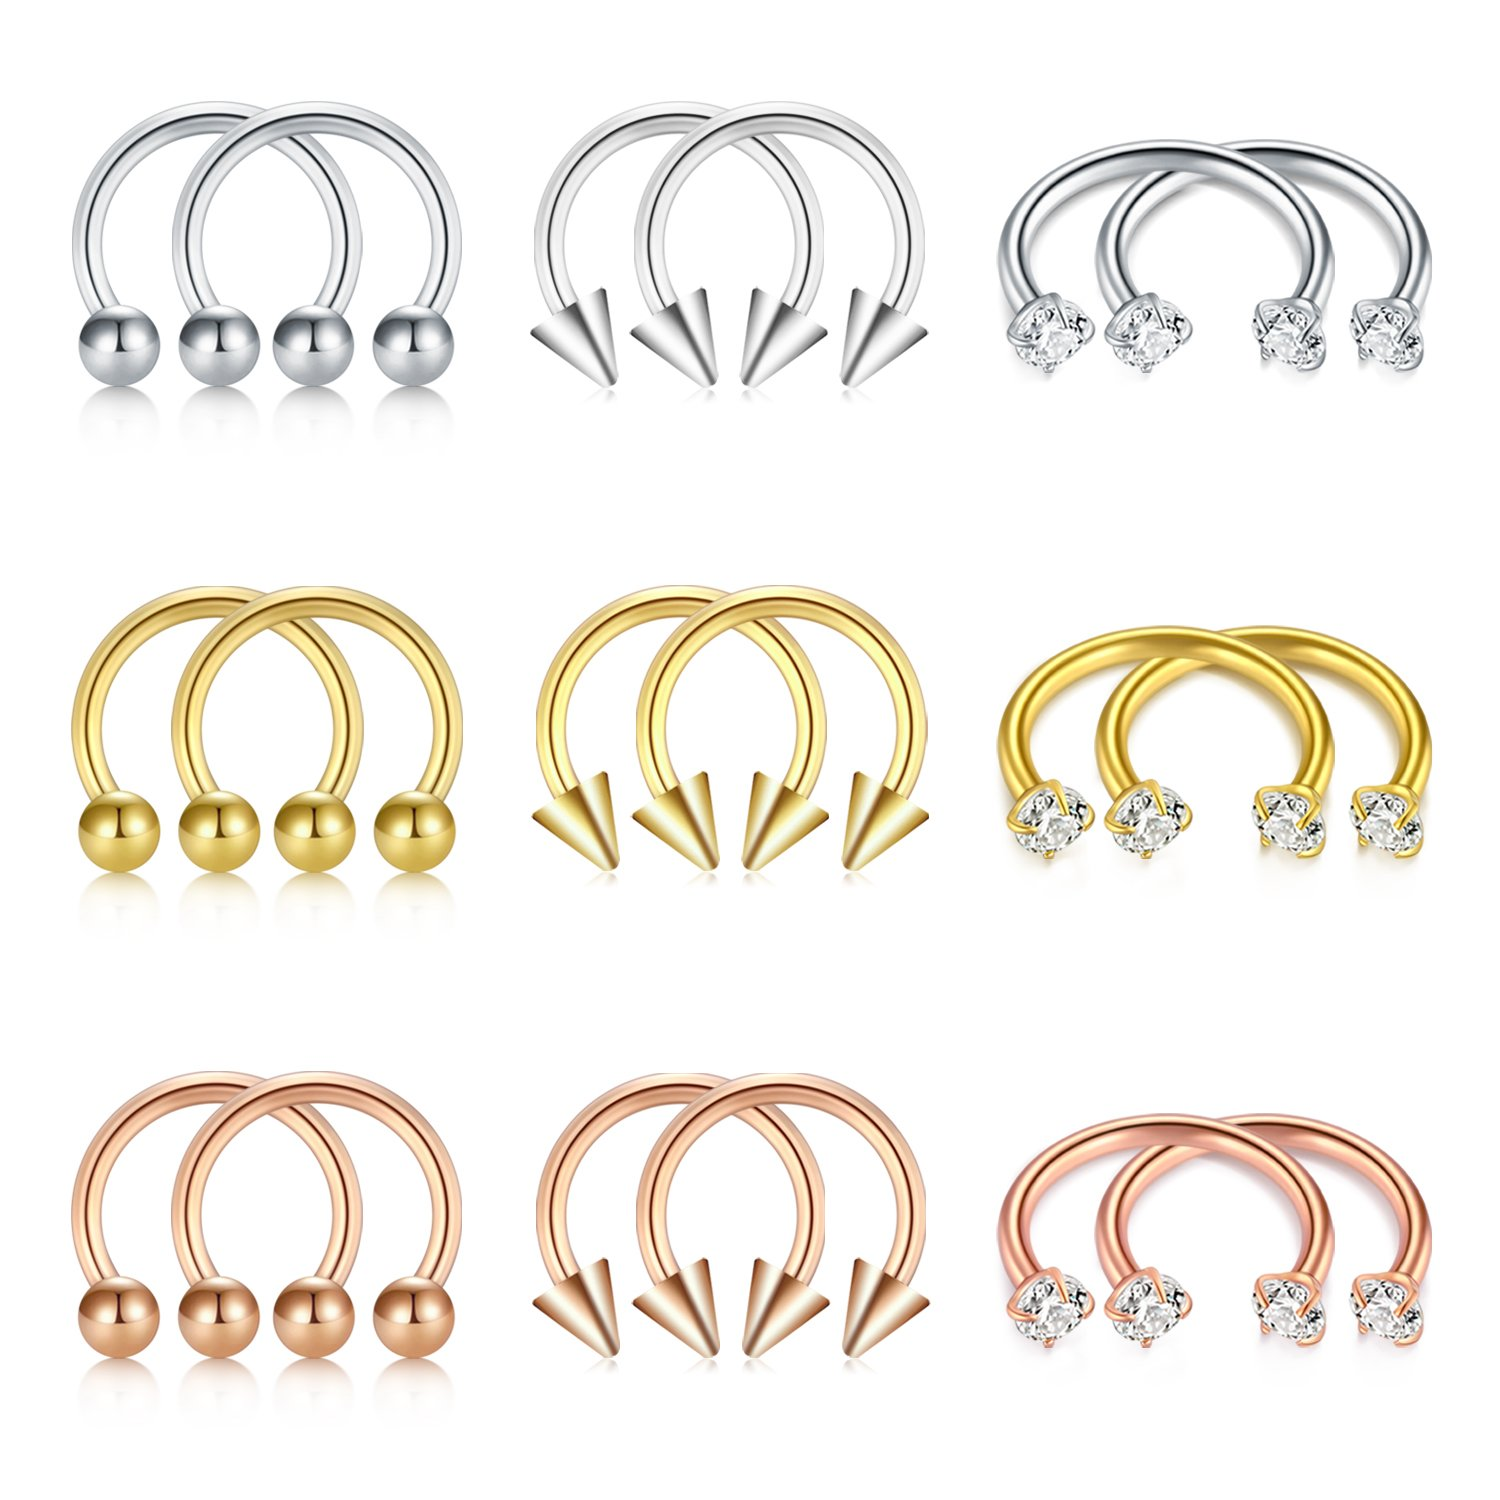 D.Bella Cartilage Earring, 16 Gauge 8mm Horseshoe Nose Ring Septum Rings for Cartilage Earring Lip Eyebrow Piercing